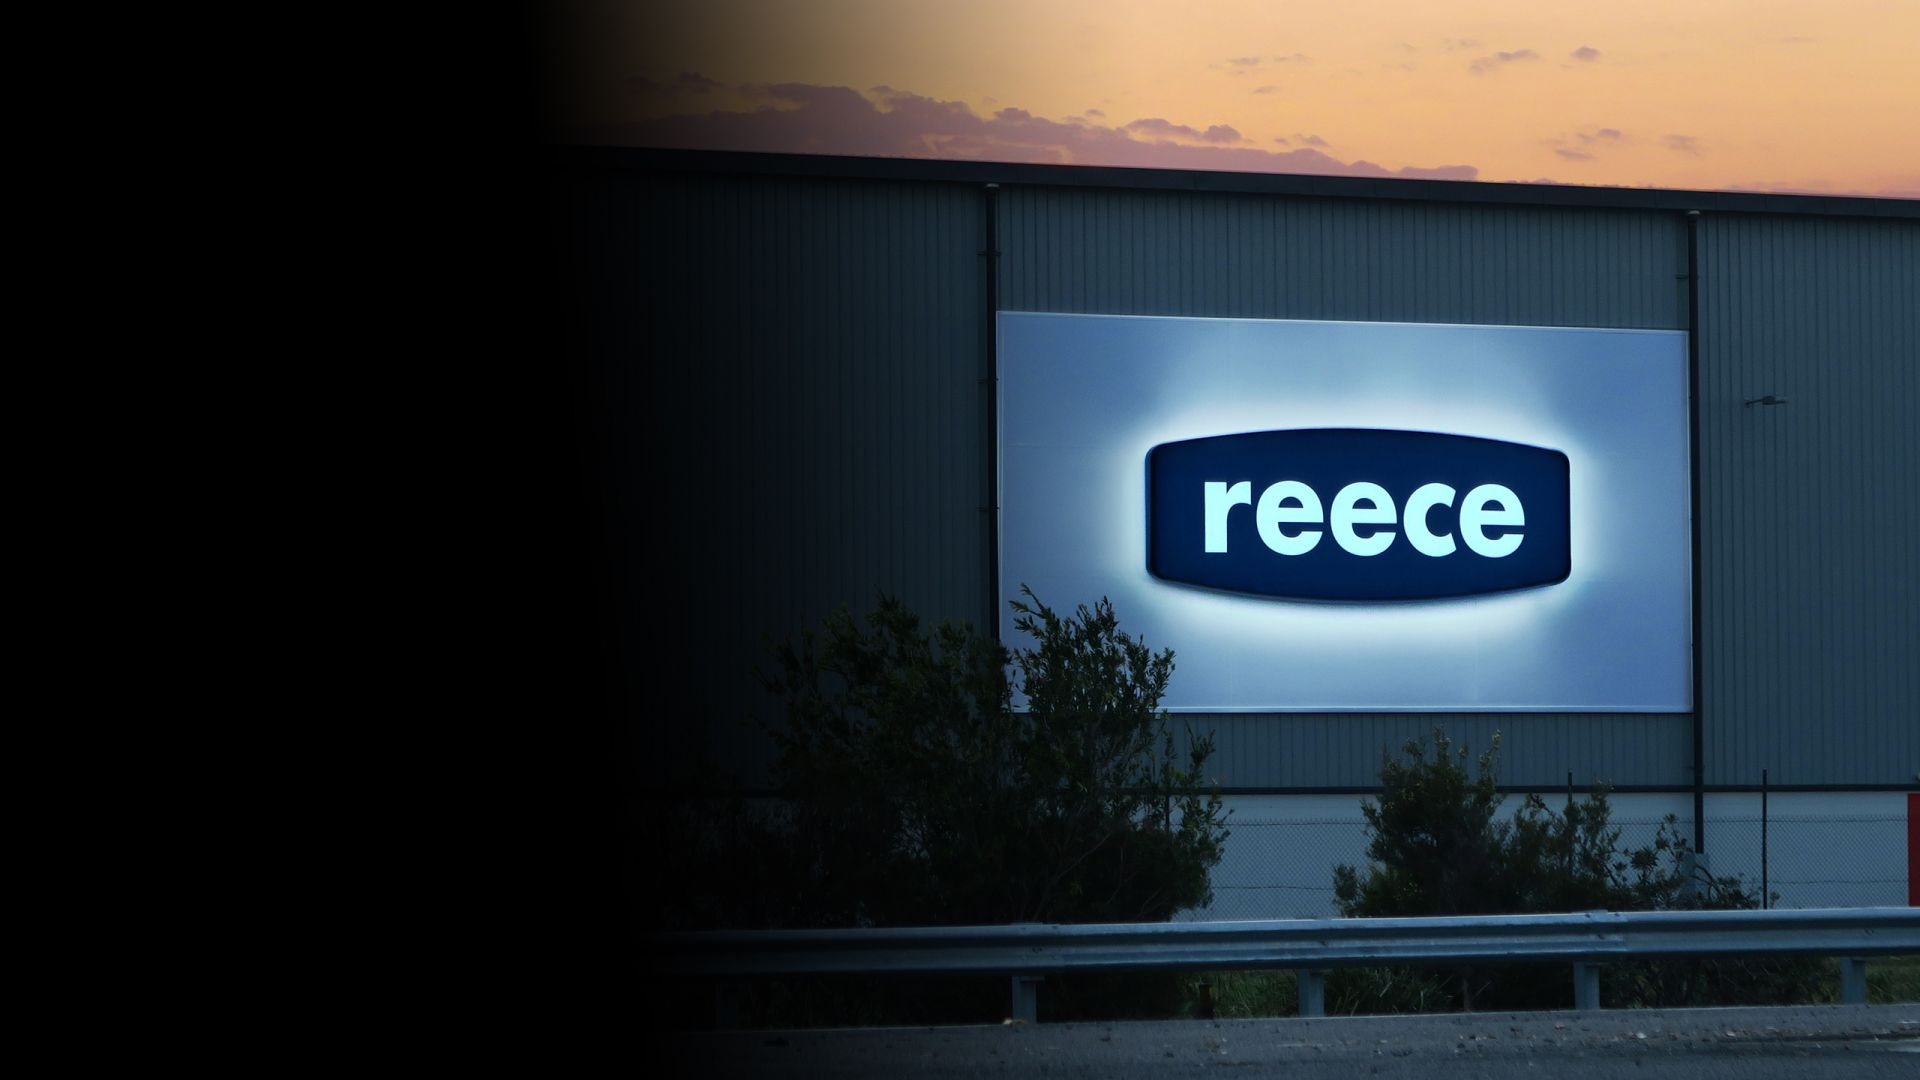 Reece illuminated building signage